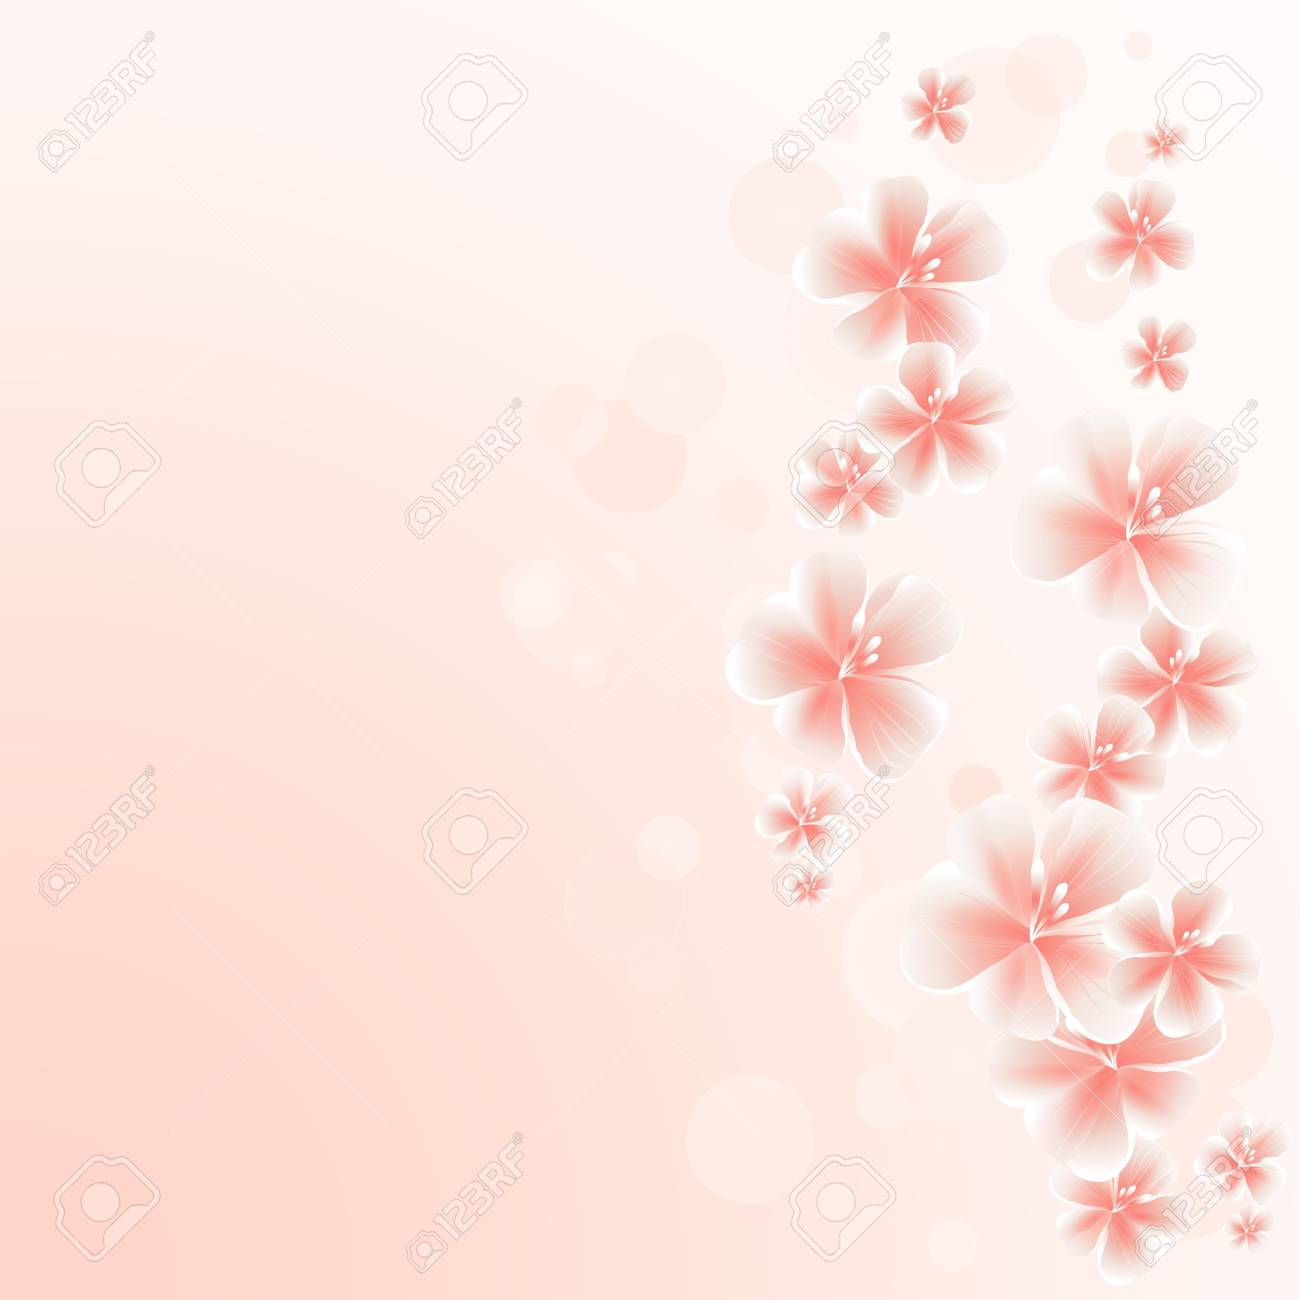 light pink peach flowers border on pink bokeh background apple tree royalty free cliparts vectors and stock illustration image 96395191 light pink peach flowers border on pink bokeh background apple tree